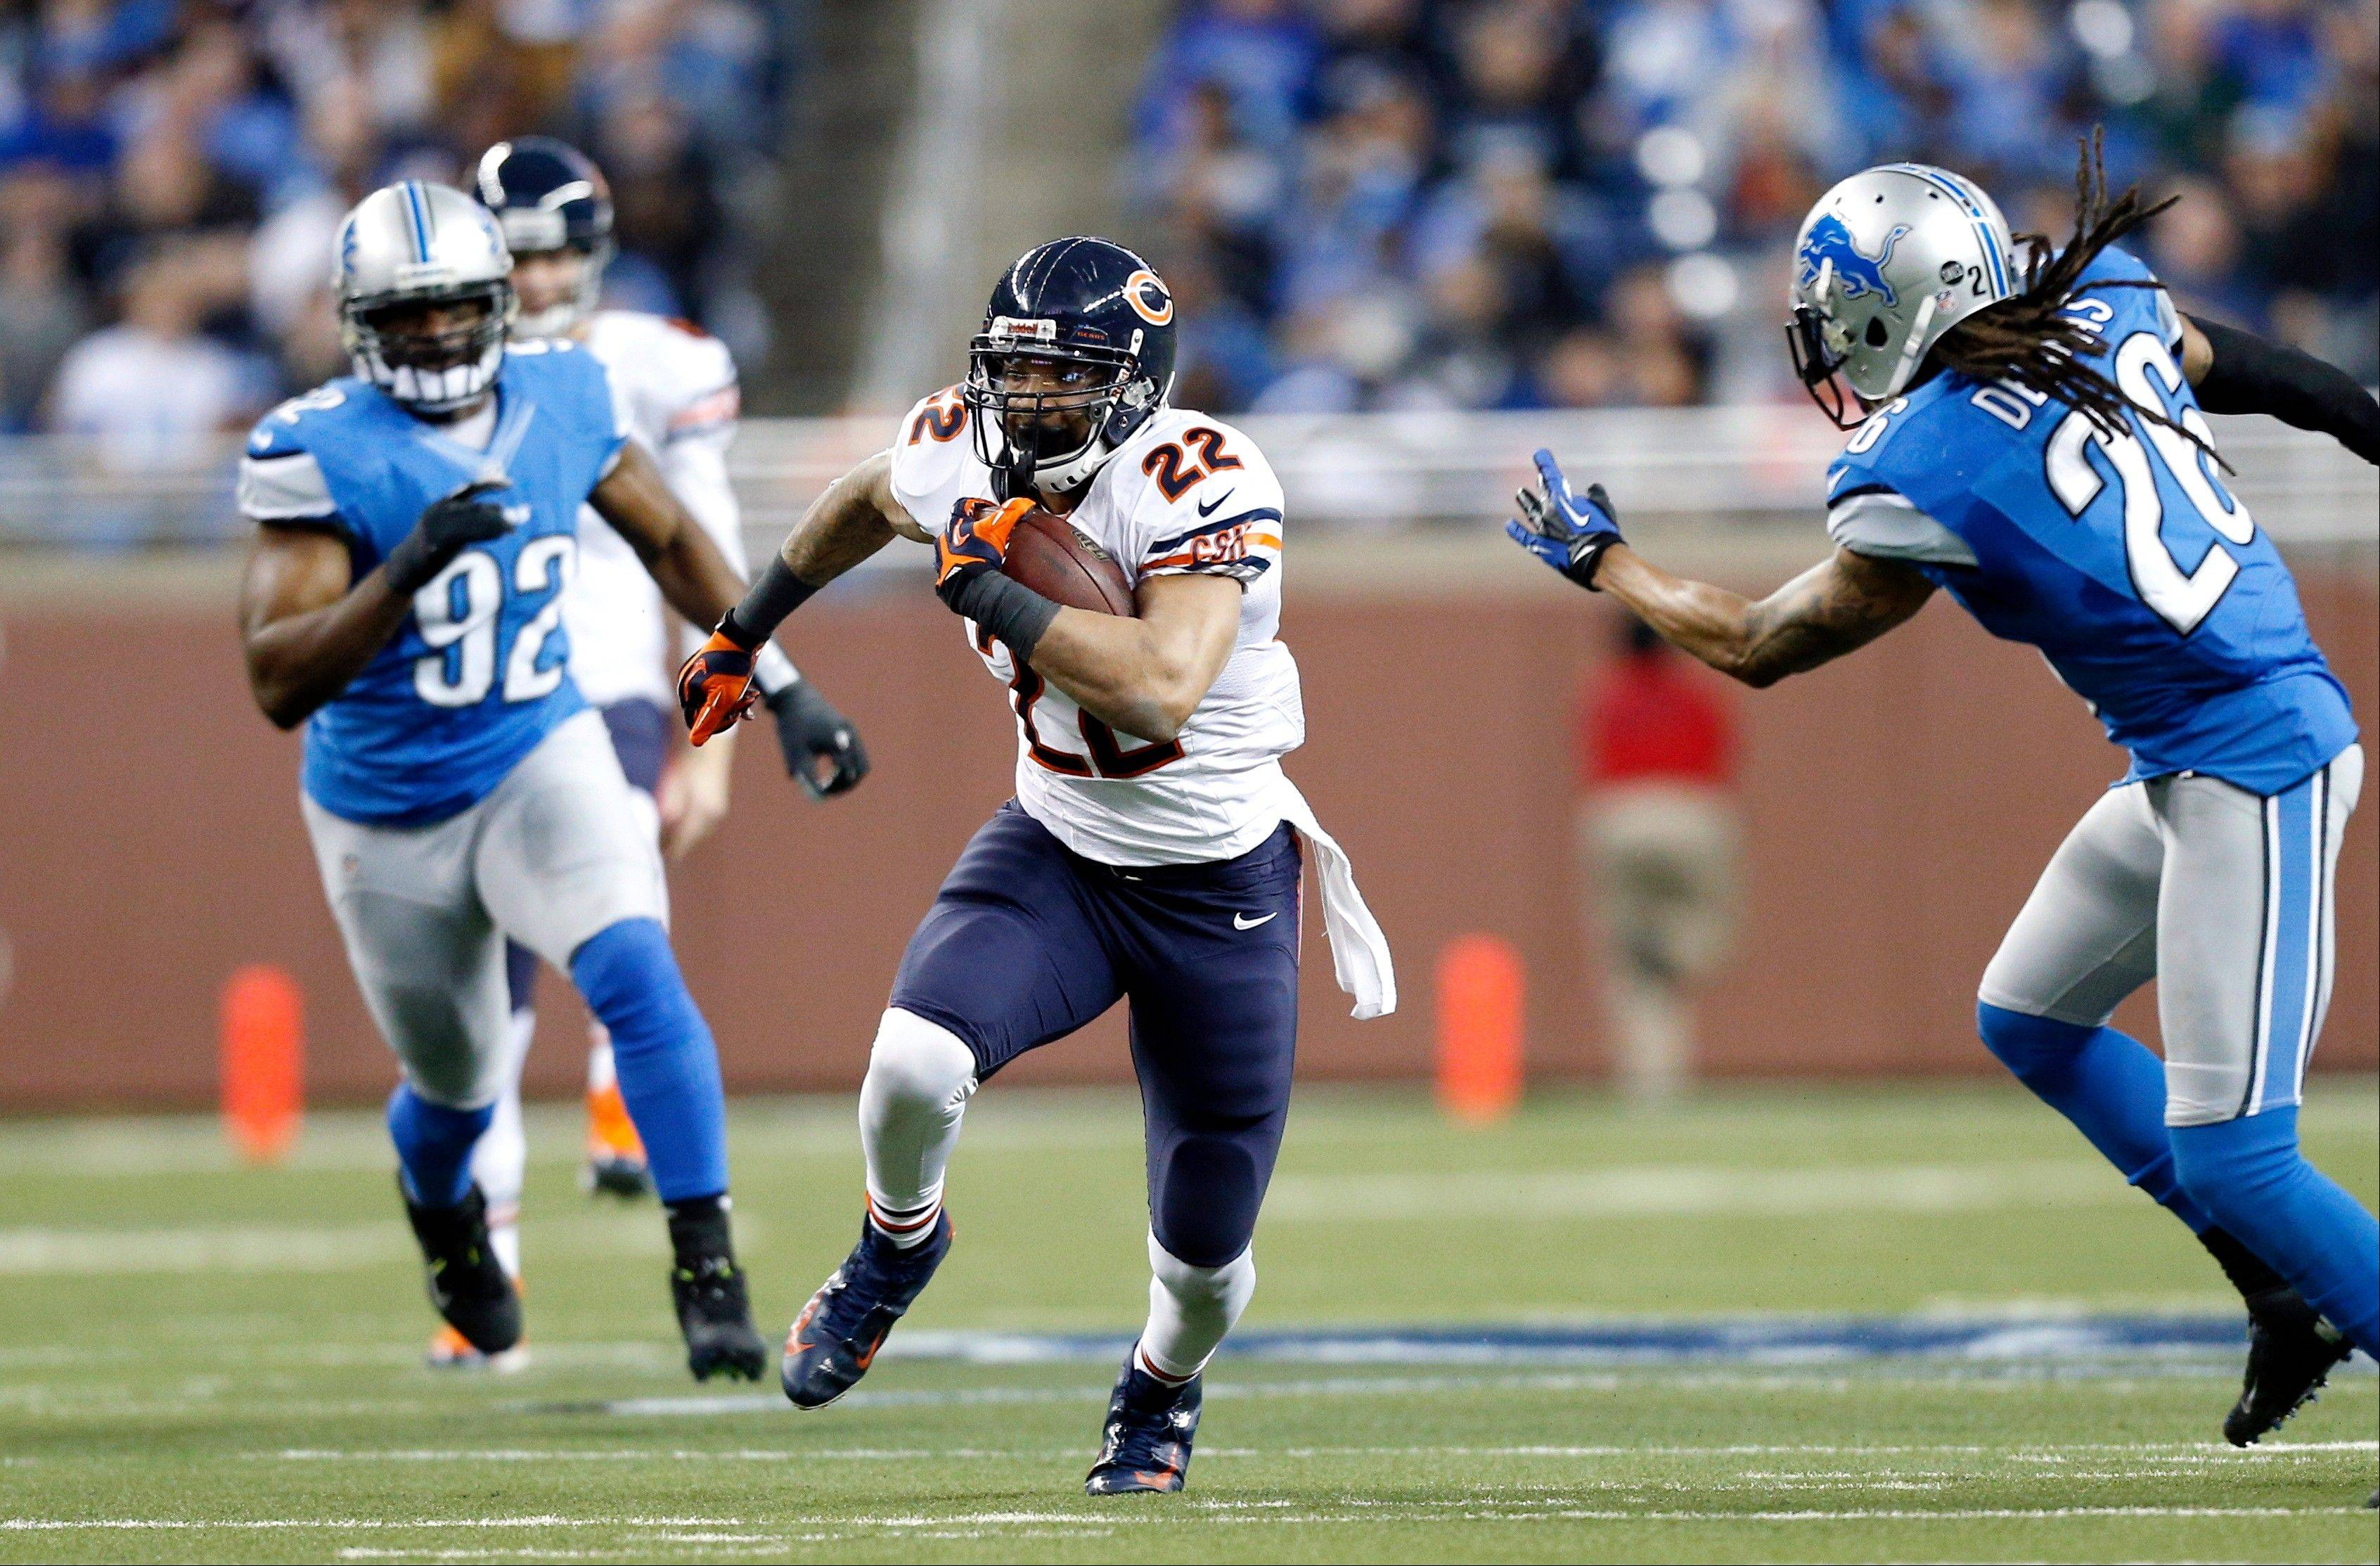 Chicago Bears running back Matt Forte (22) runs between Detroit Lions defensive end Cliff Avril (92) and free safety Louis Delmas (26) during the second quarter.